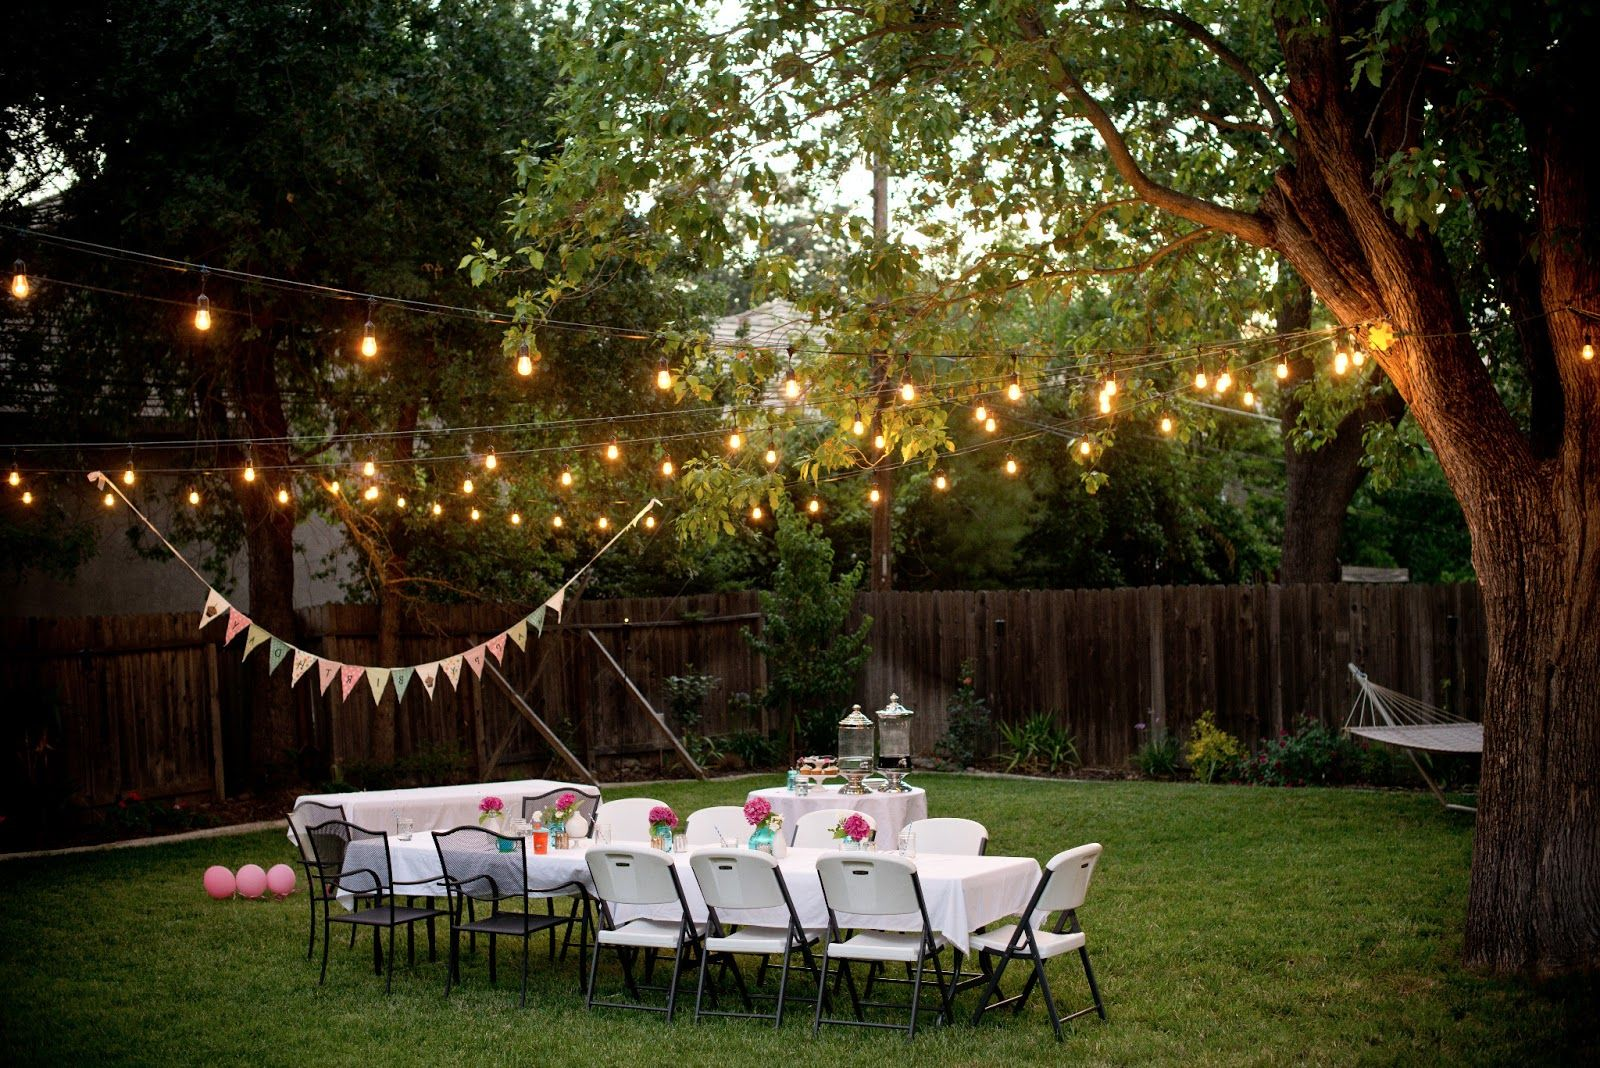 Gallery from Outdoor Lights Party 2020 Details @house2homegoods.net